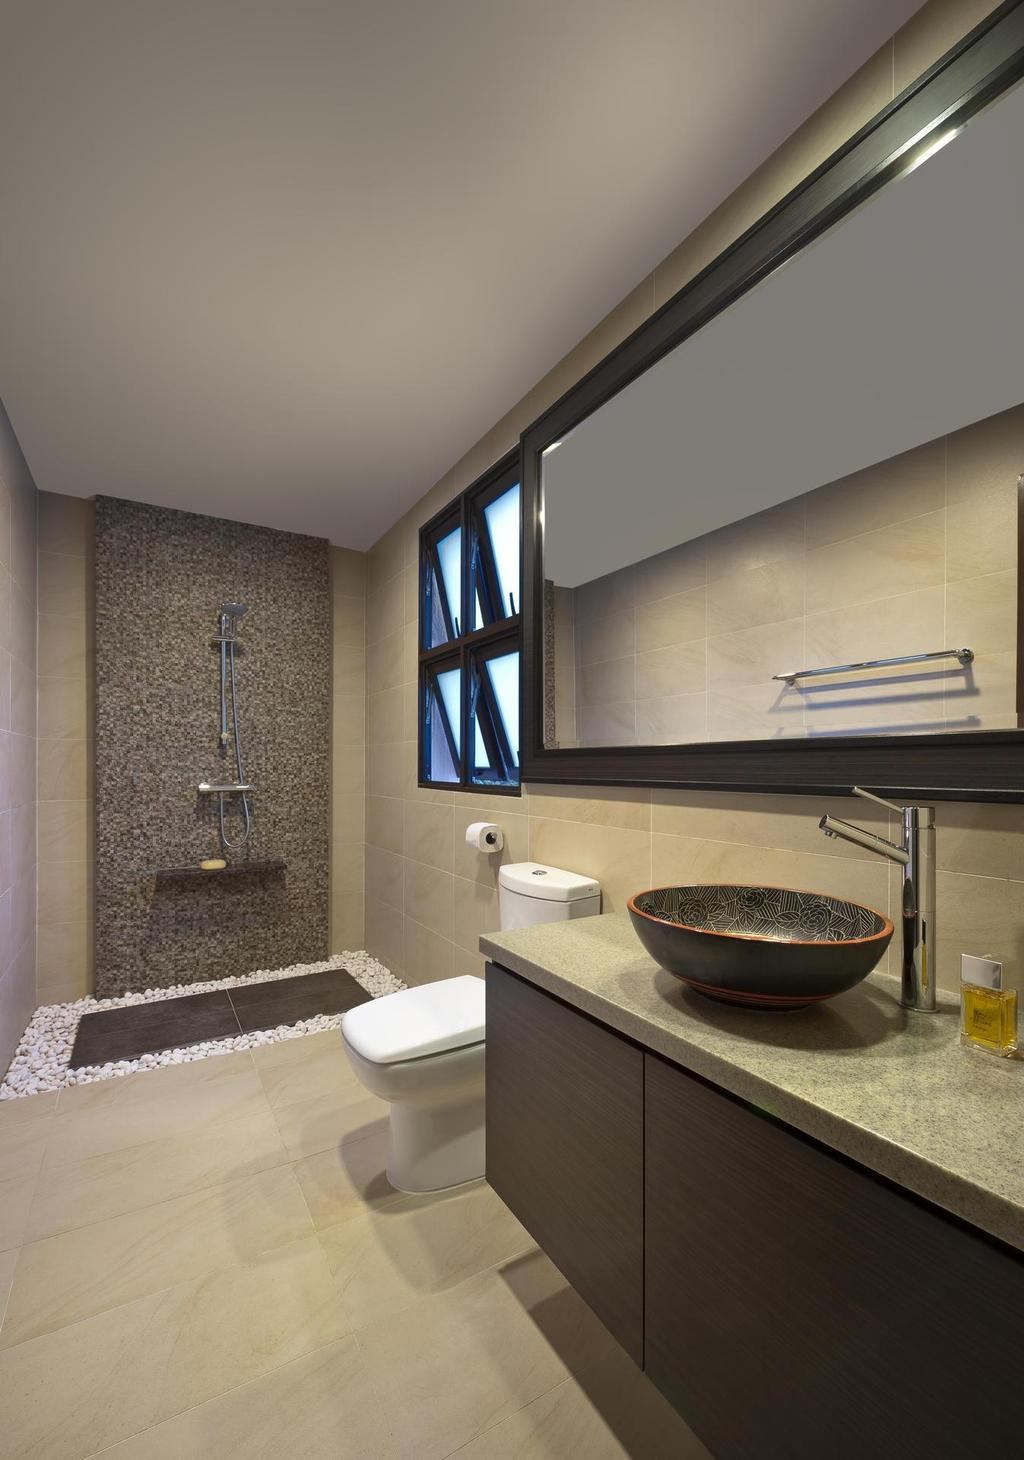 Traditional, Landed, Bathroom, Park Villas, Interior Designer, Space Factor, Vessel Sink, Bathroom Counter, Reosrt, Pebbles, Mirror, Stone Wall, Marble Surface, Architecture, Building, Skylight, Window, Indoors, Interior Design, Room, Sink, Pot